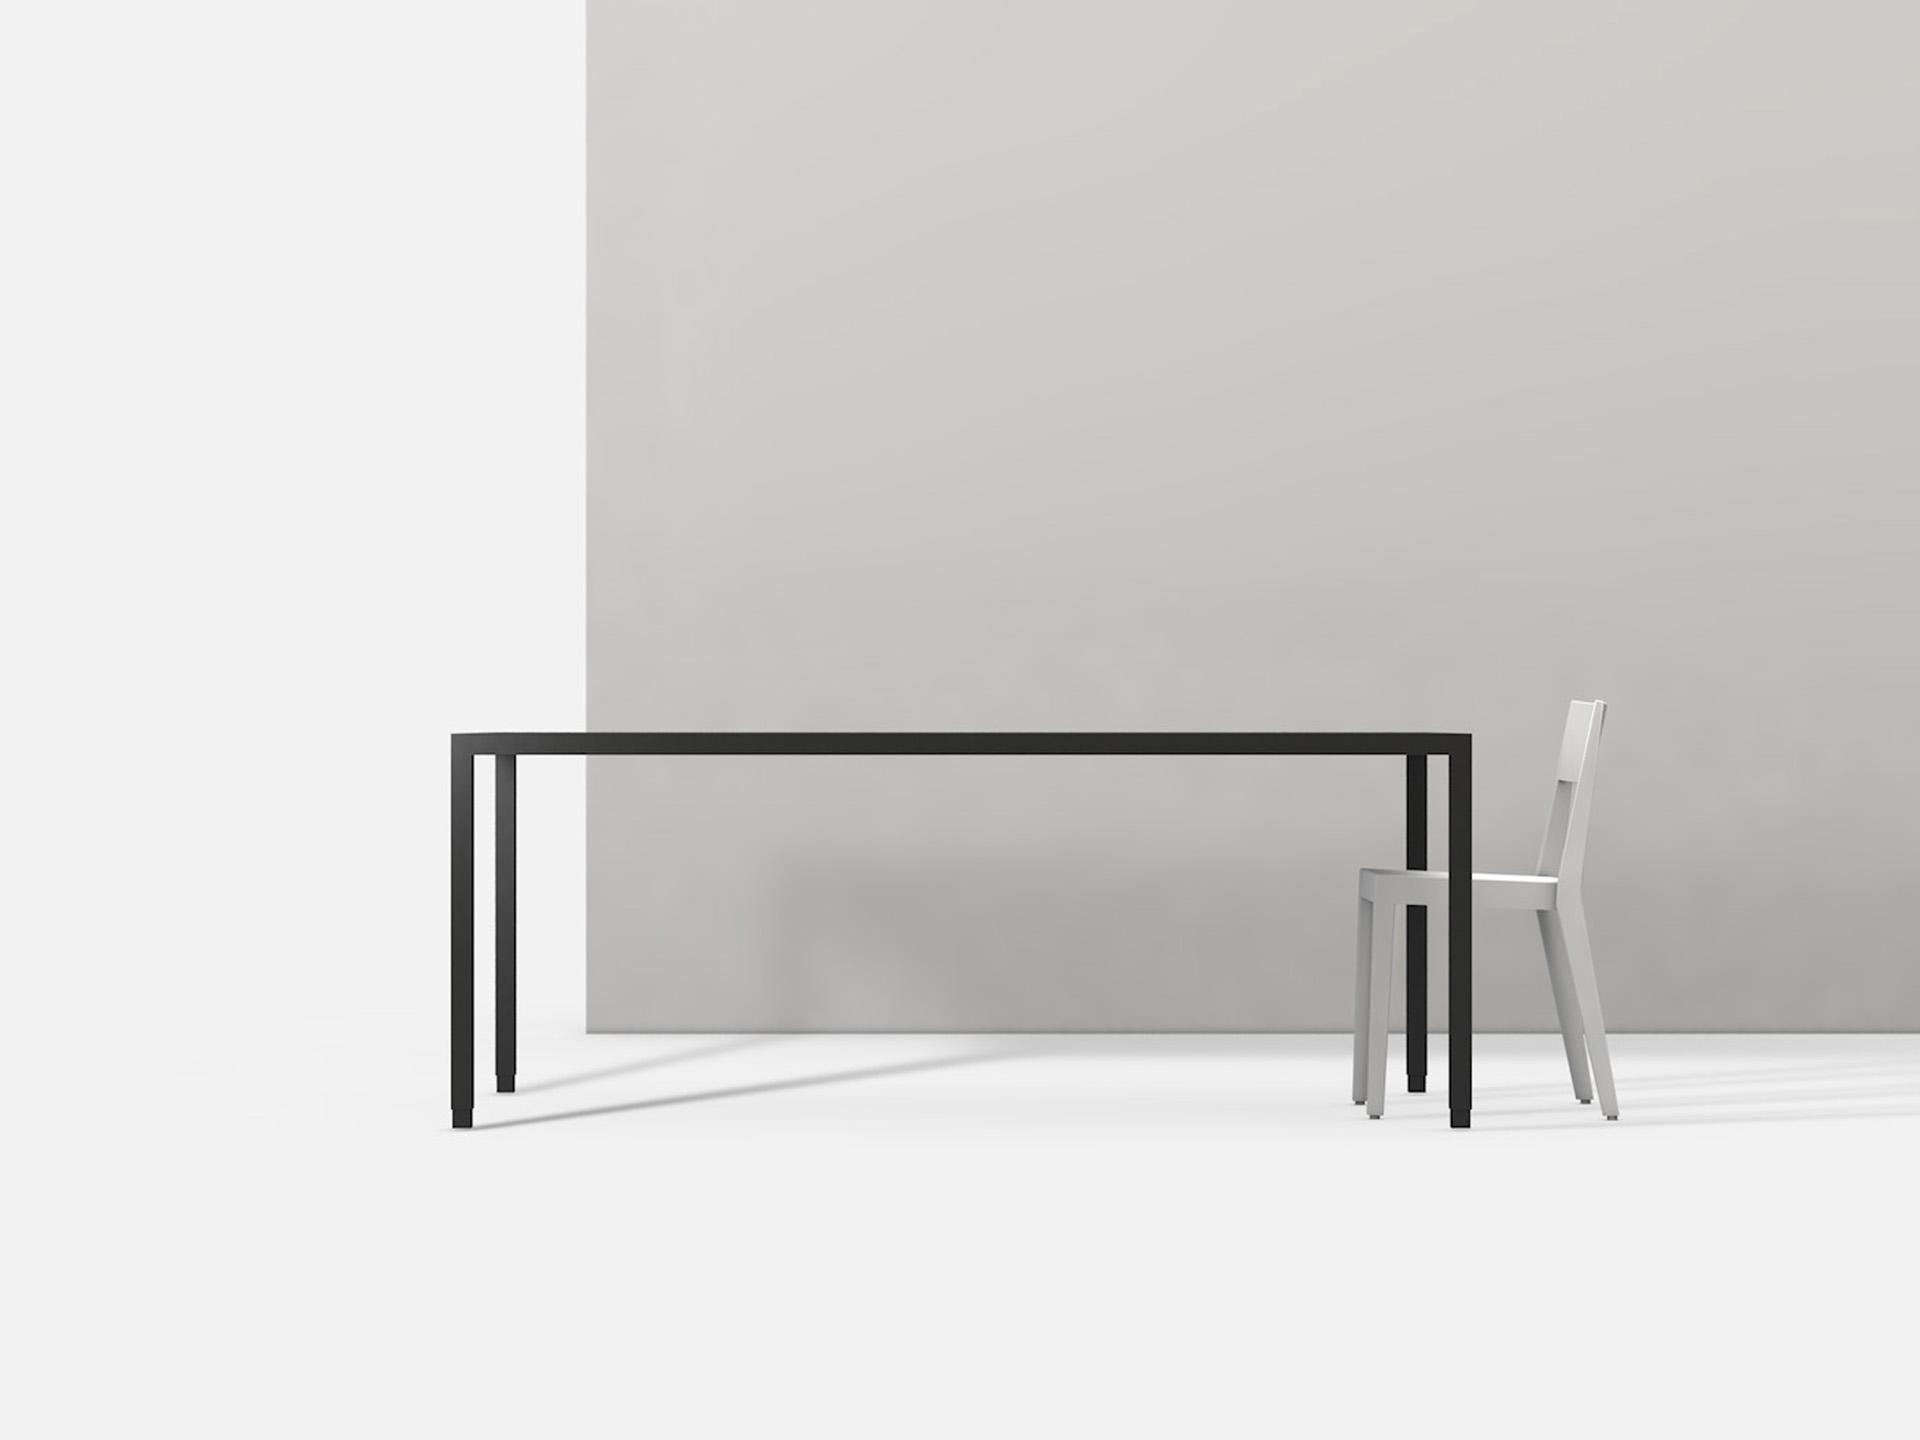 IONDESIGN_Conference_table_02.jpg